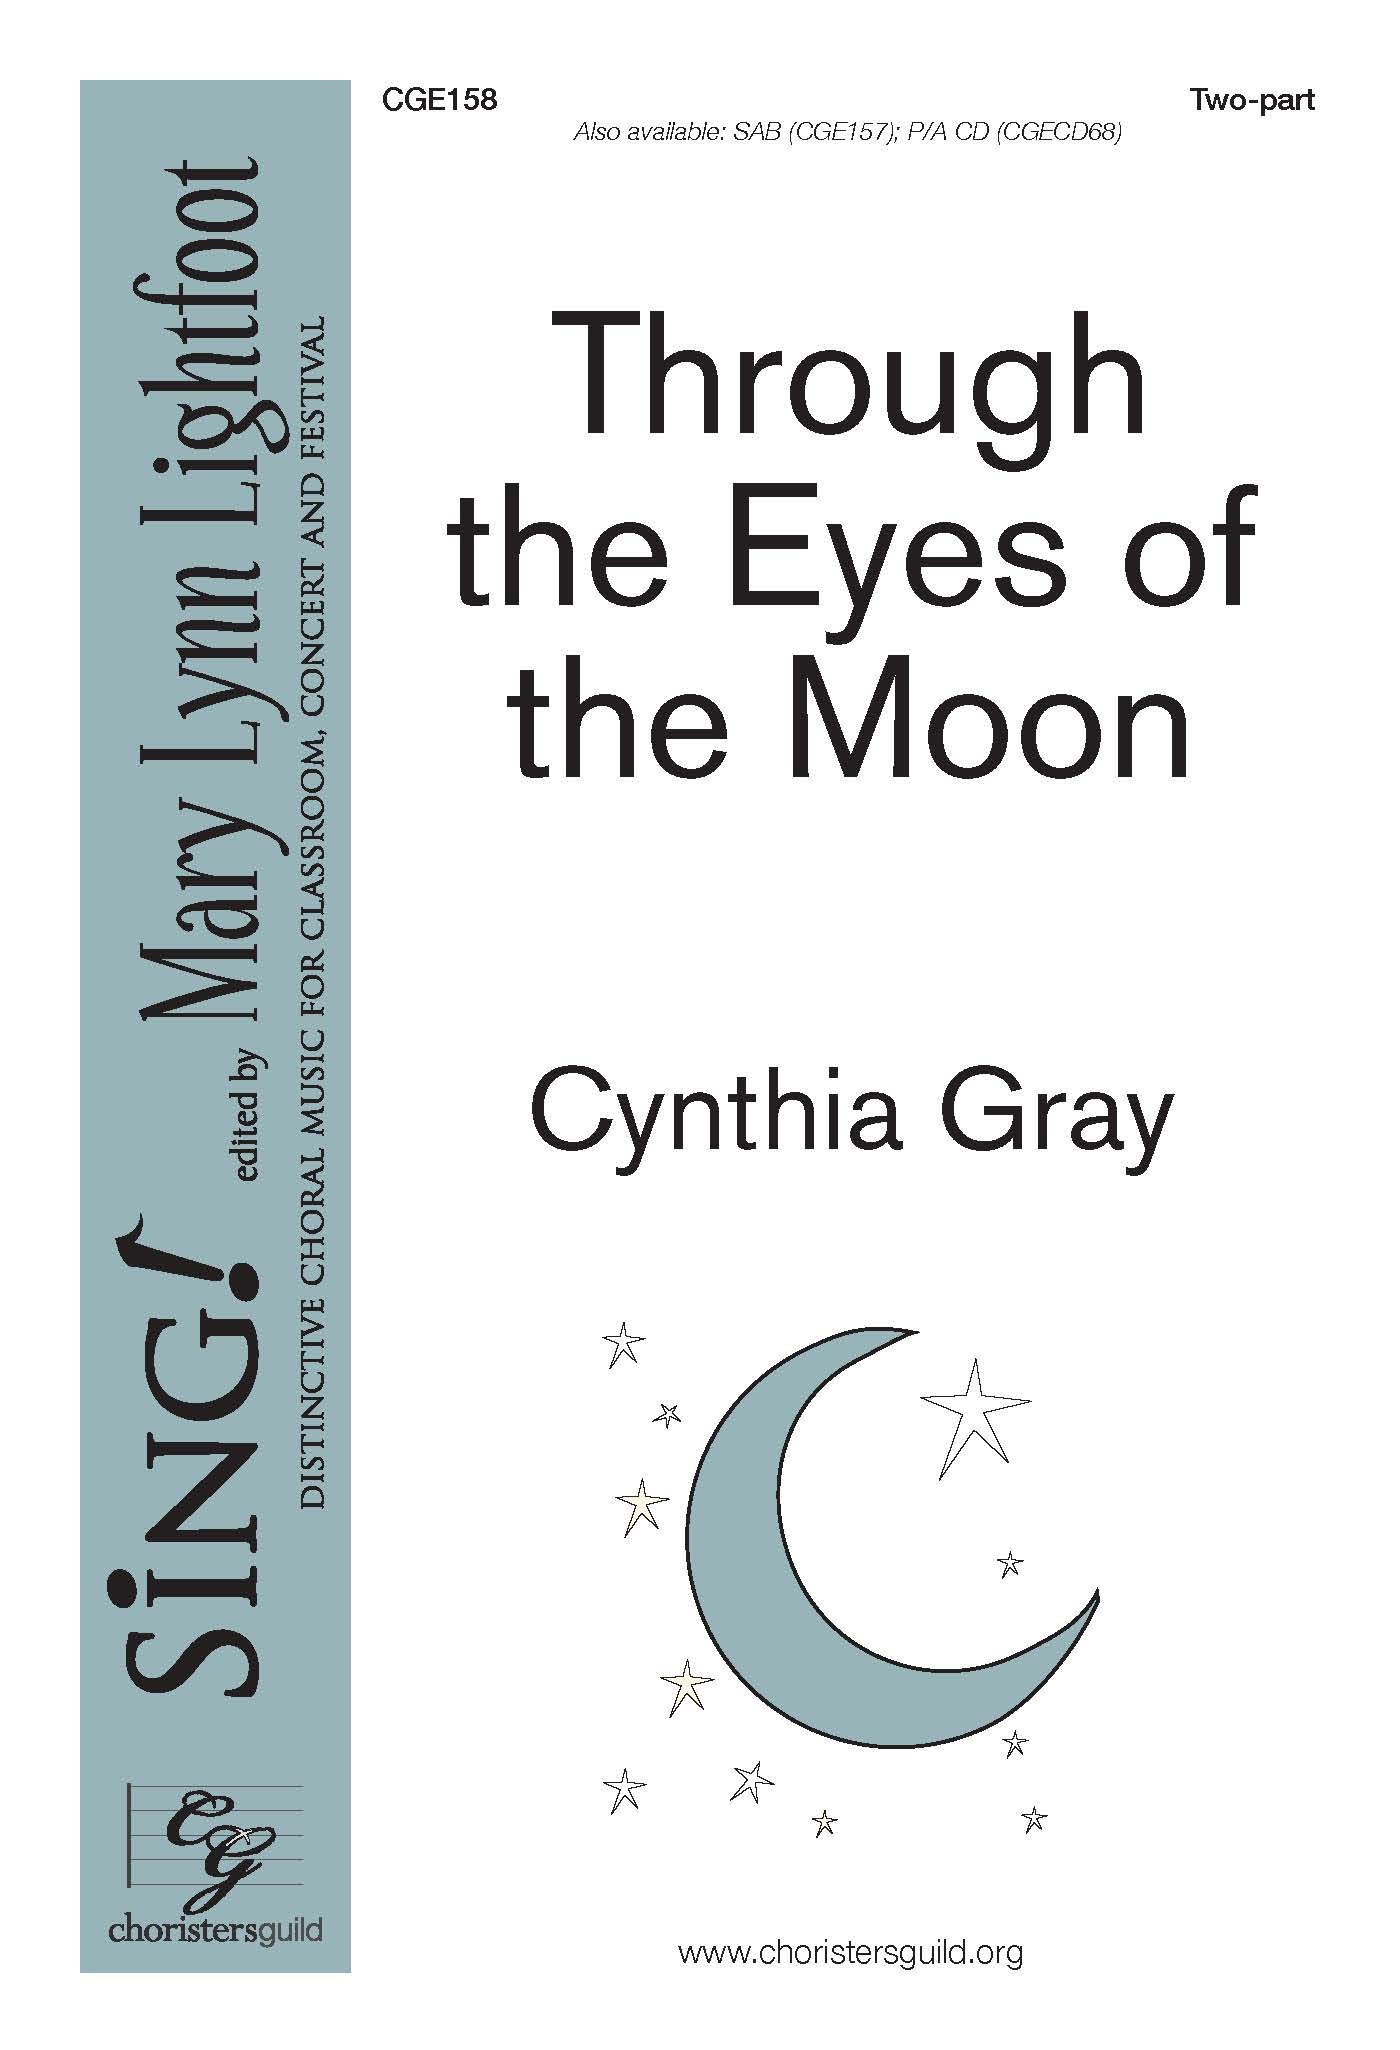 Through the Eyes of the Moon Two-part